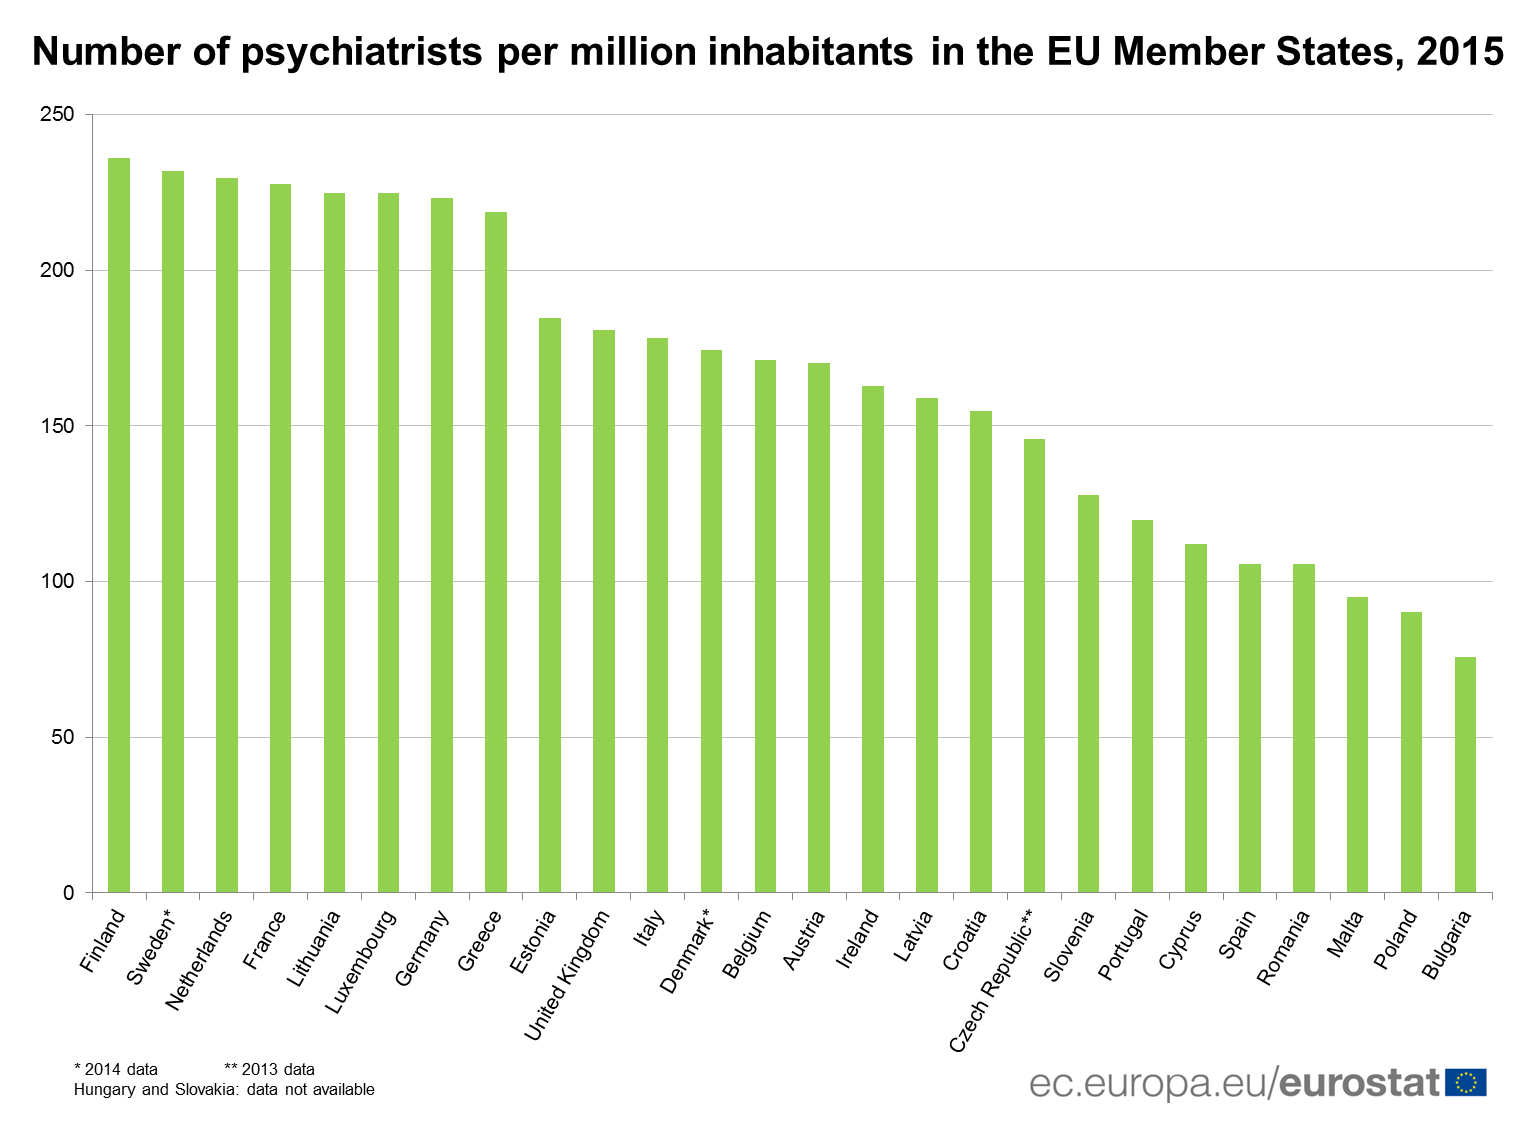 Number of psychiatrits per million inhabitants in the EU Member States, 2015